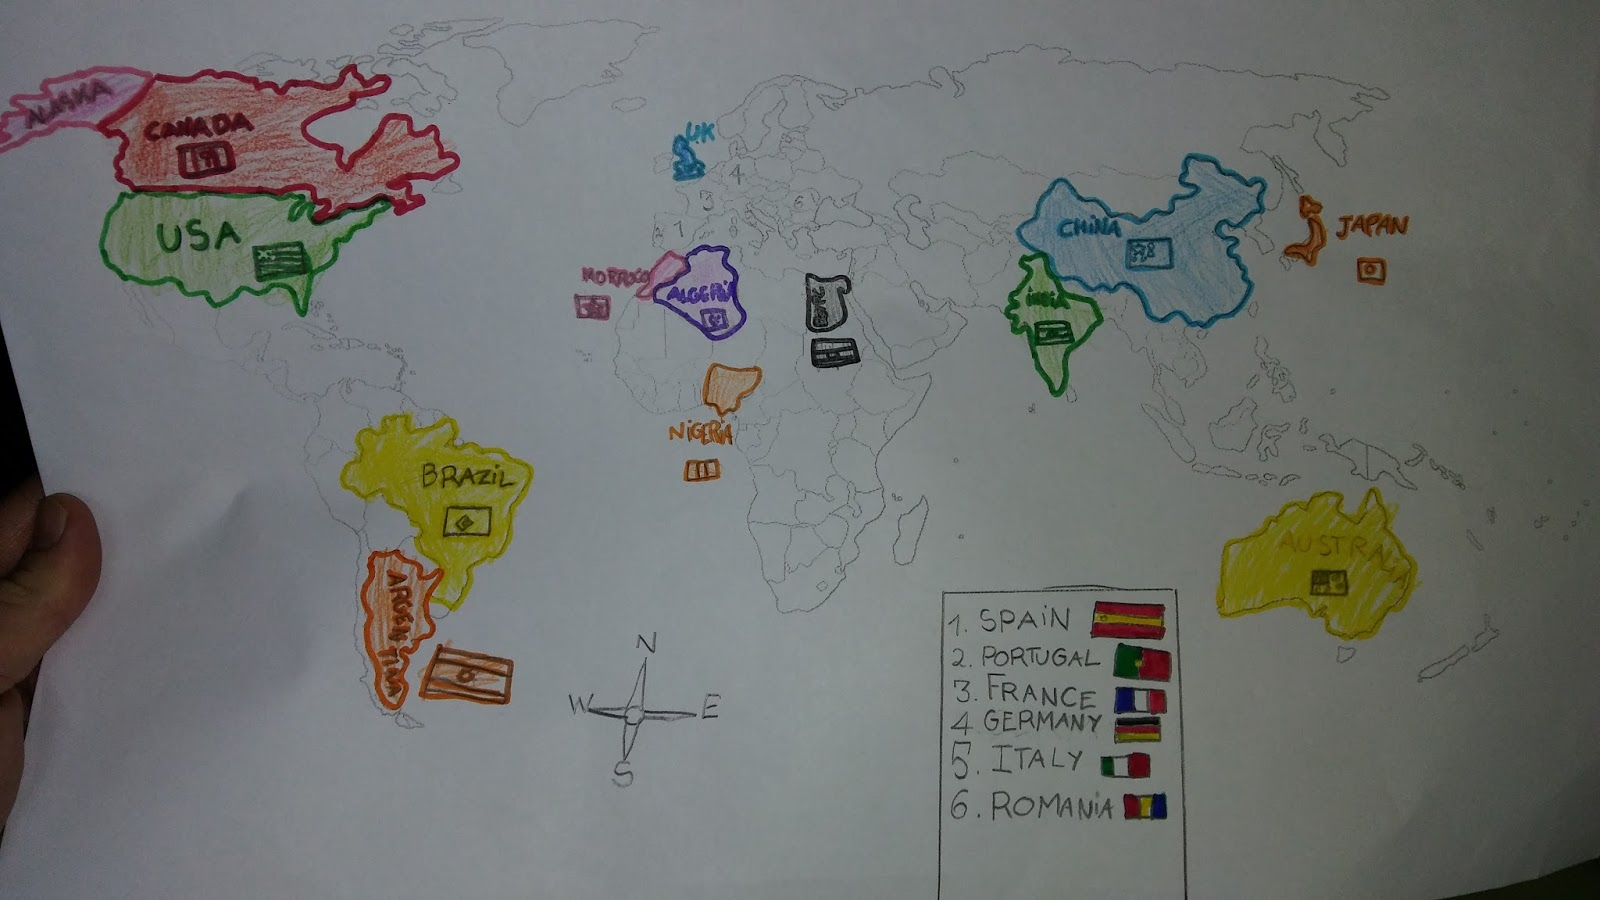 Los toranautas world map countries world map countries gumiabroncs Image collections